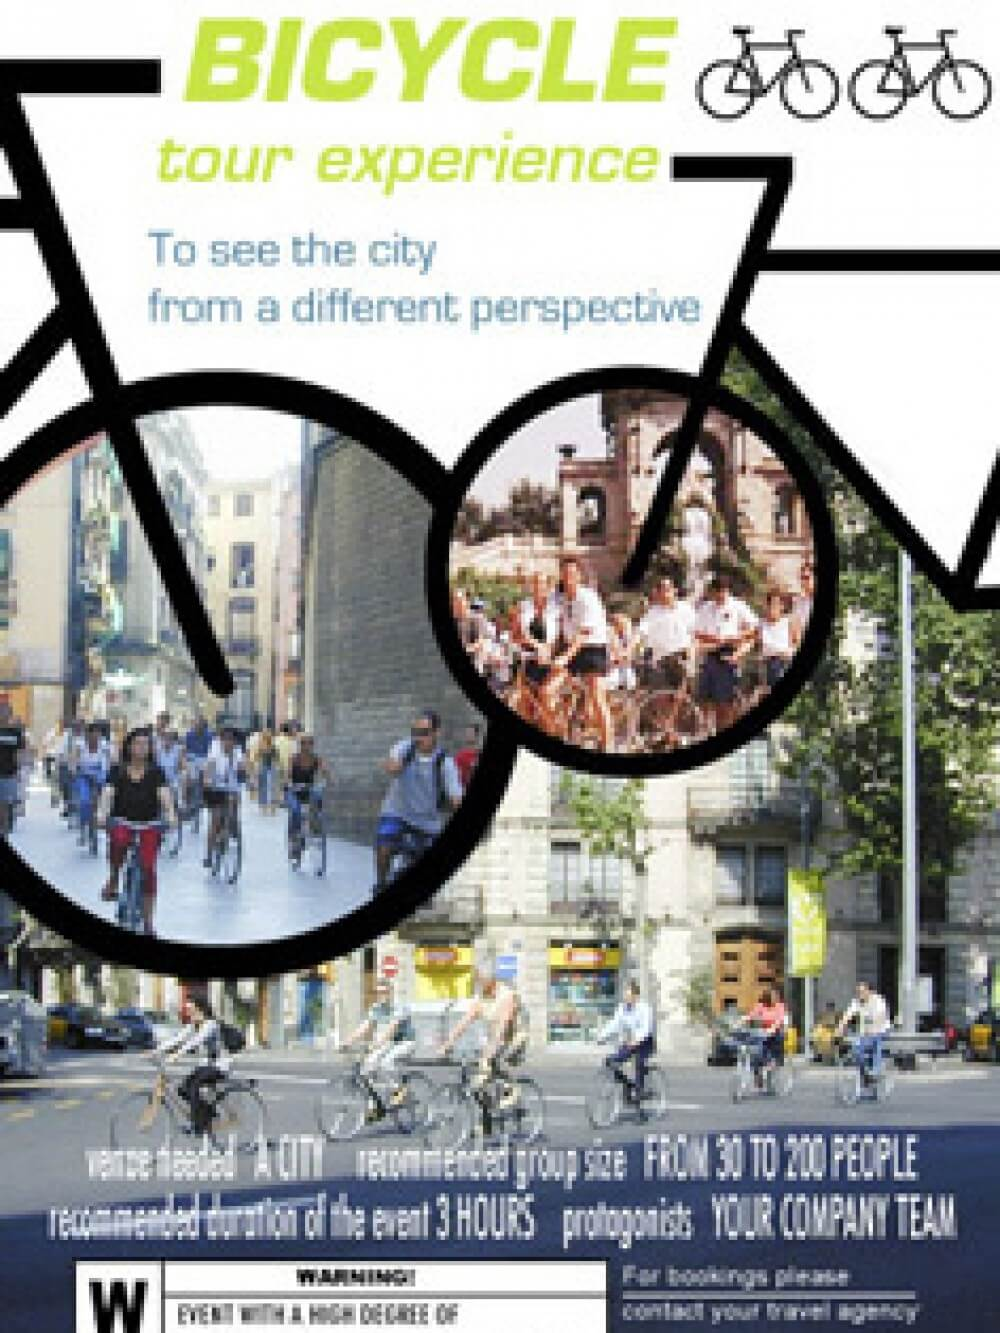 bicycle_tour_experience_vertical_web